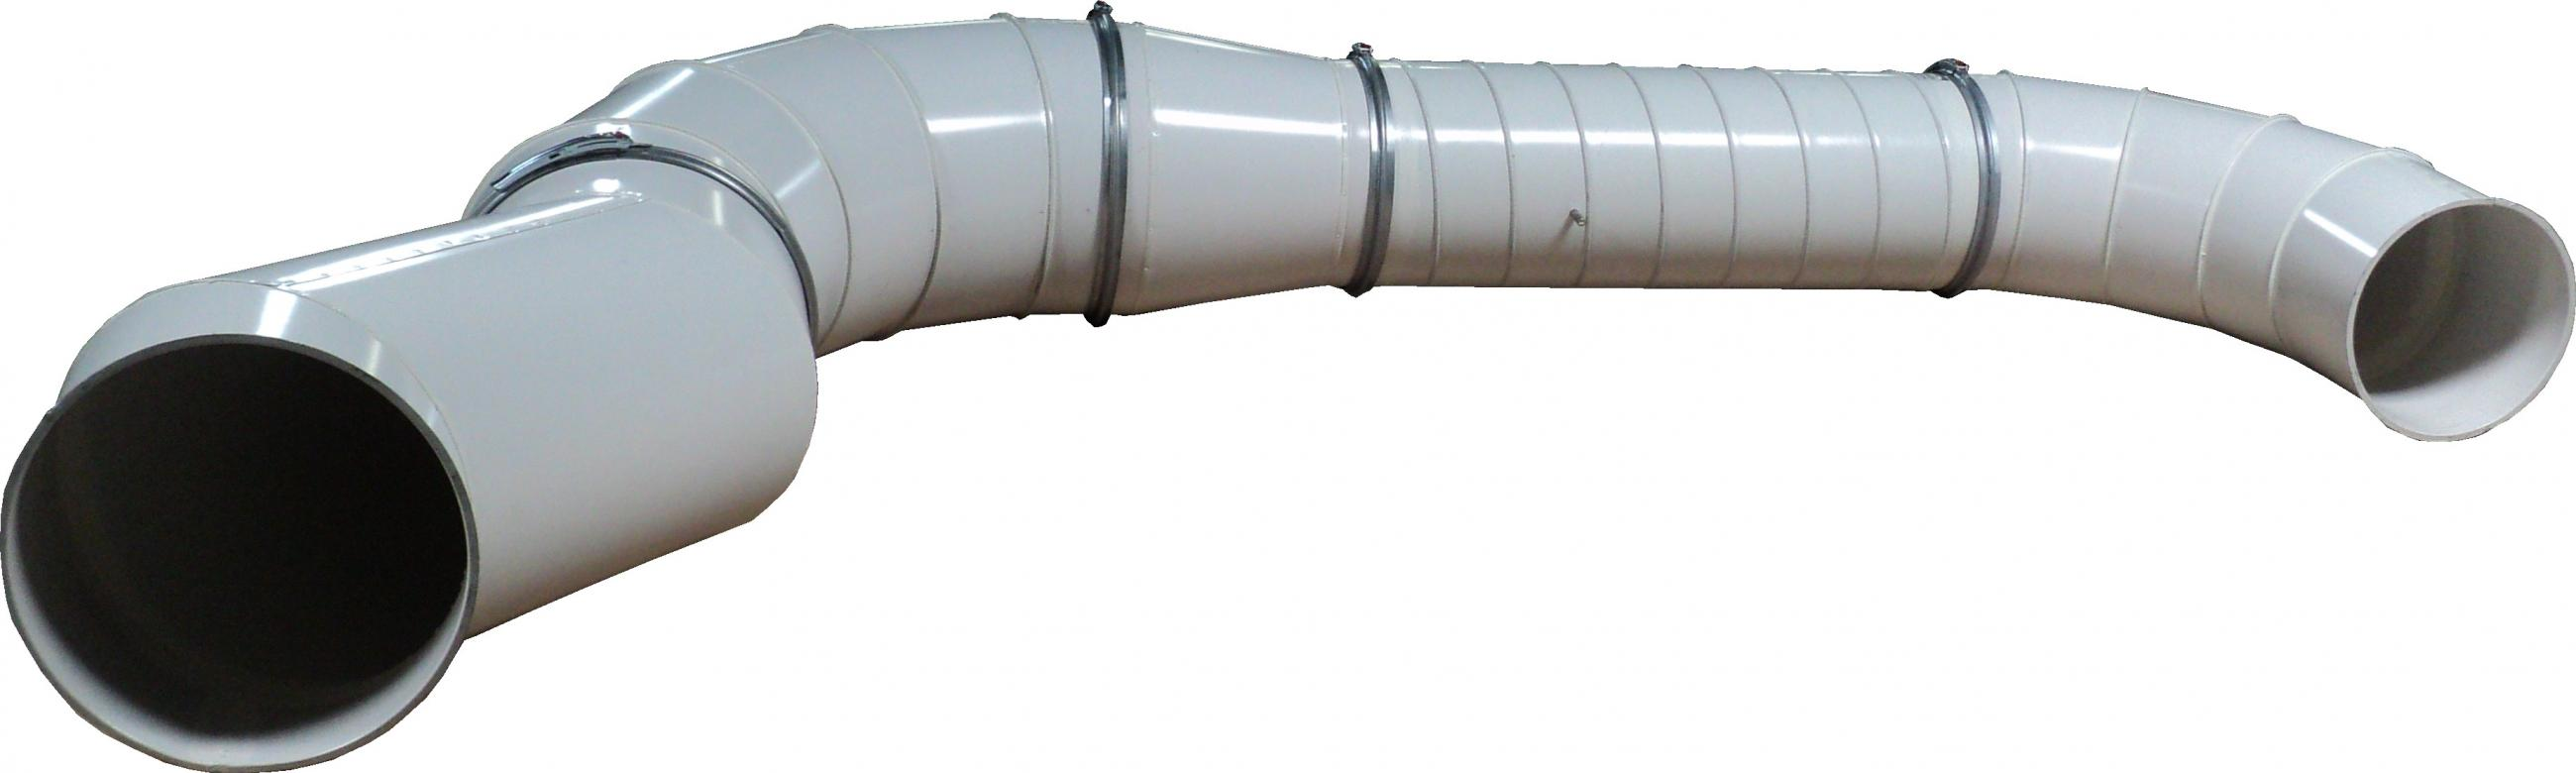 #566575 Pvc Ductwork Related Keywords & Suggestions Pvc Ductwork  Most Effective 4395 Hvac Duct Fittings pictures with 2600x780 px on helpvideos.info - Air Conditioners, Air Coolers and more